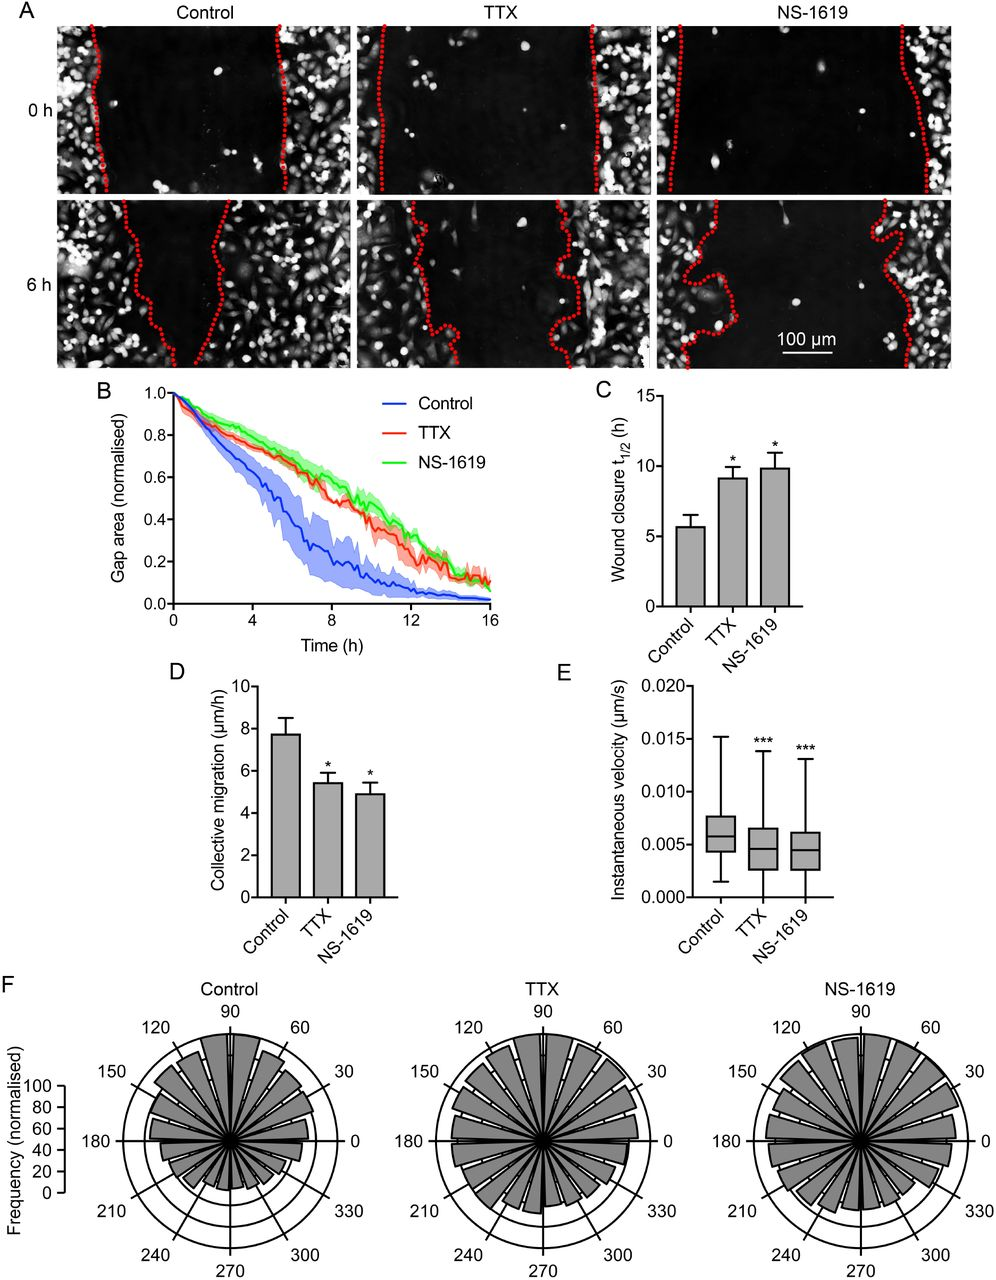 """Na v 1.5-dependent membrane potential depolarization regulates cell migration. (A) Representative scratch wounds at 0 h and 6 h into a wound healing assay ± TTX (30 μM) or NS-1619 (1 μM). Red dotted lines highlight wound edges. (B) Wound area during the migration assay (""""gap remaining""""), normalized to starting value (n = 3). (C) t 1/2 of wound closure (n ≥ 5). (D) Collective migration (µm/h) of cells closing the wound (n ≥ 5). (E) Instantaneous velocity (µm/s) of segmented cells (n ≥ 2662). (F) Polar histograms showing directionality of migrating cells at the leading edge of wounds (P"""